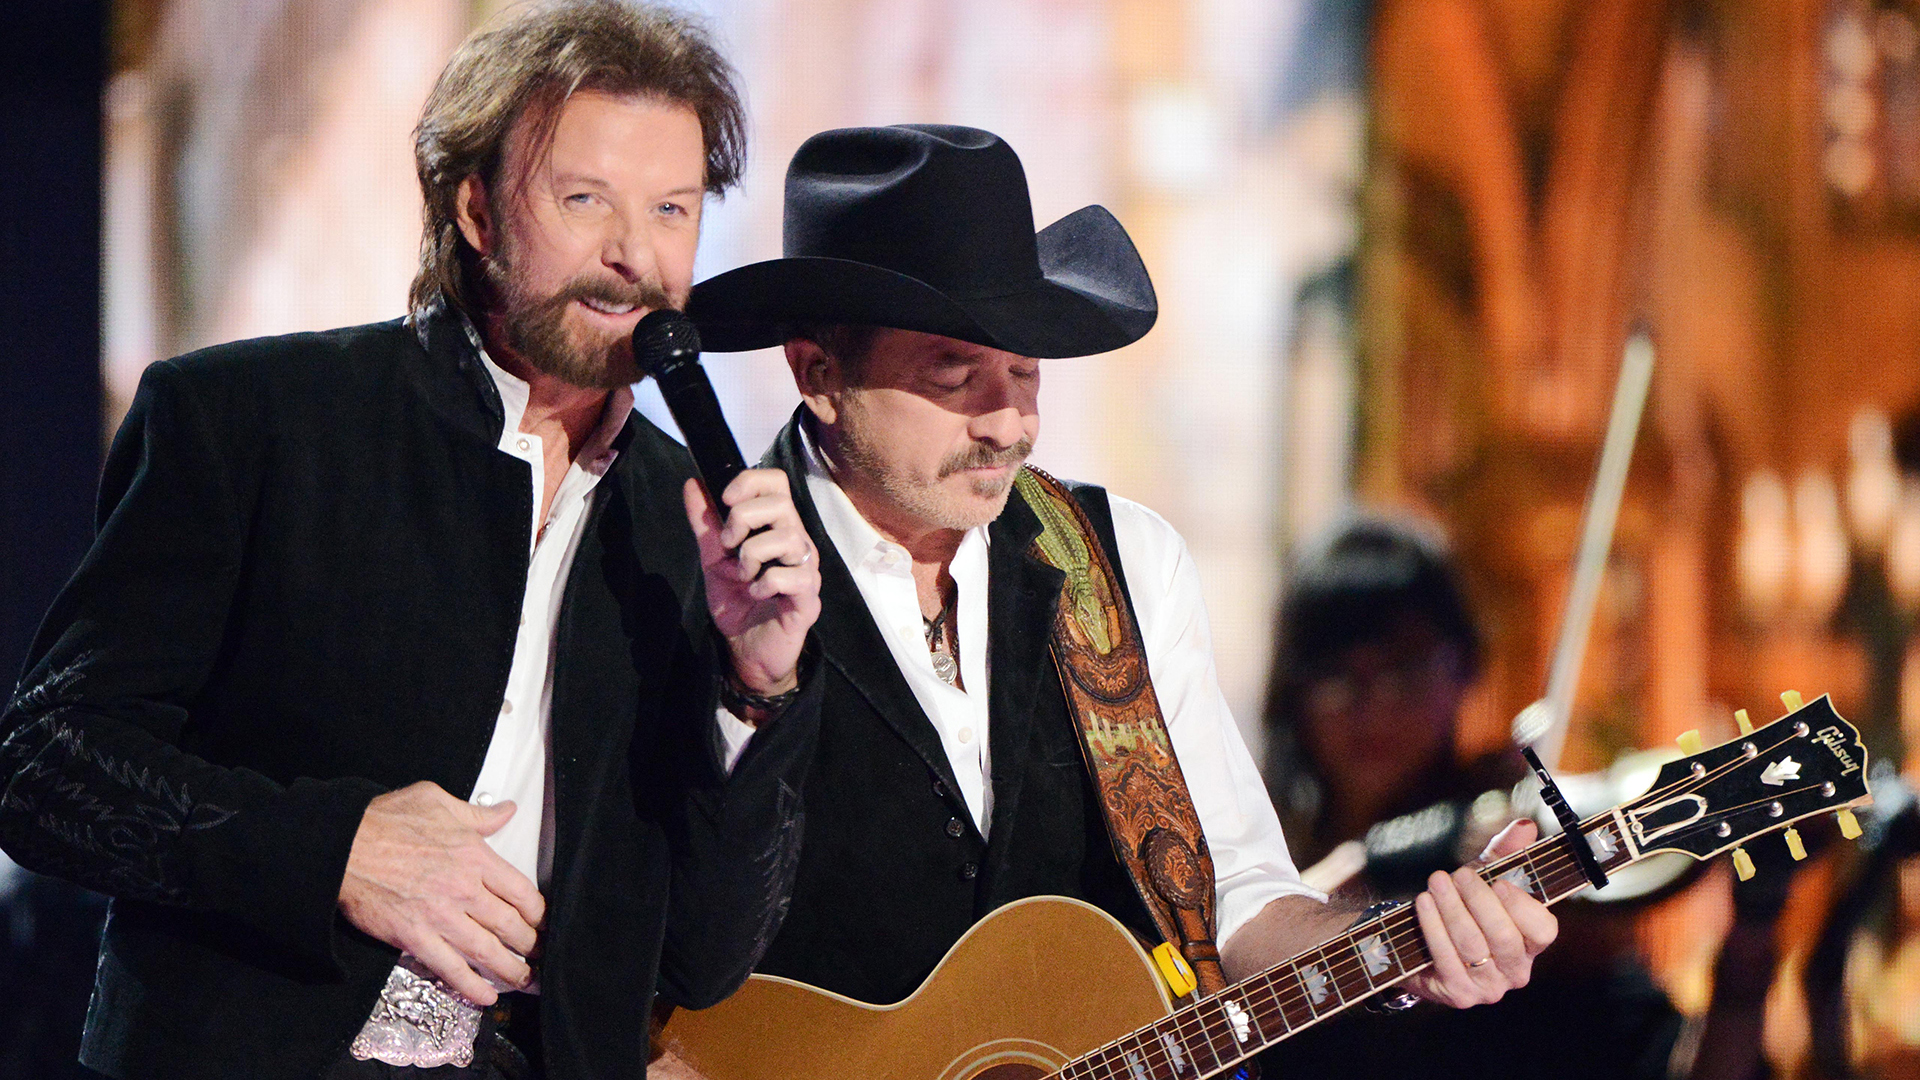 18. Brooks & Dunn perform